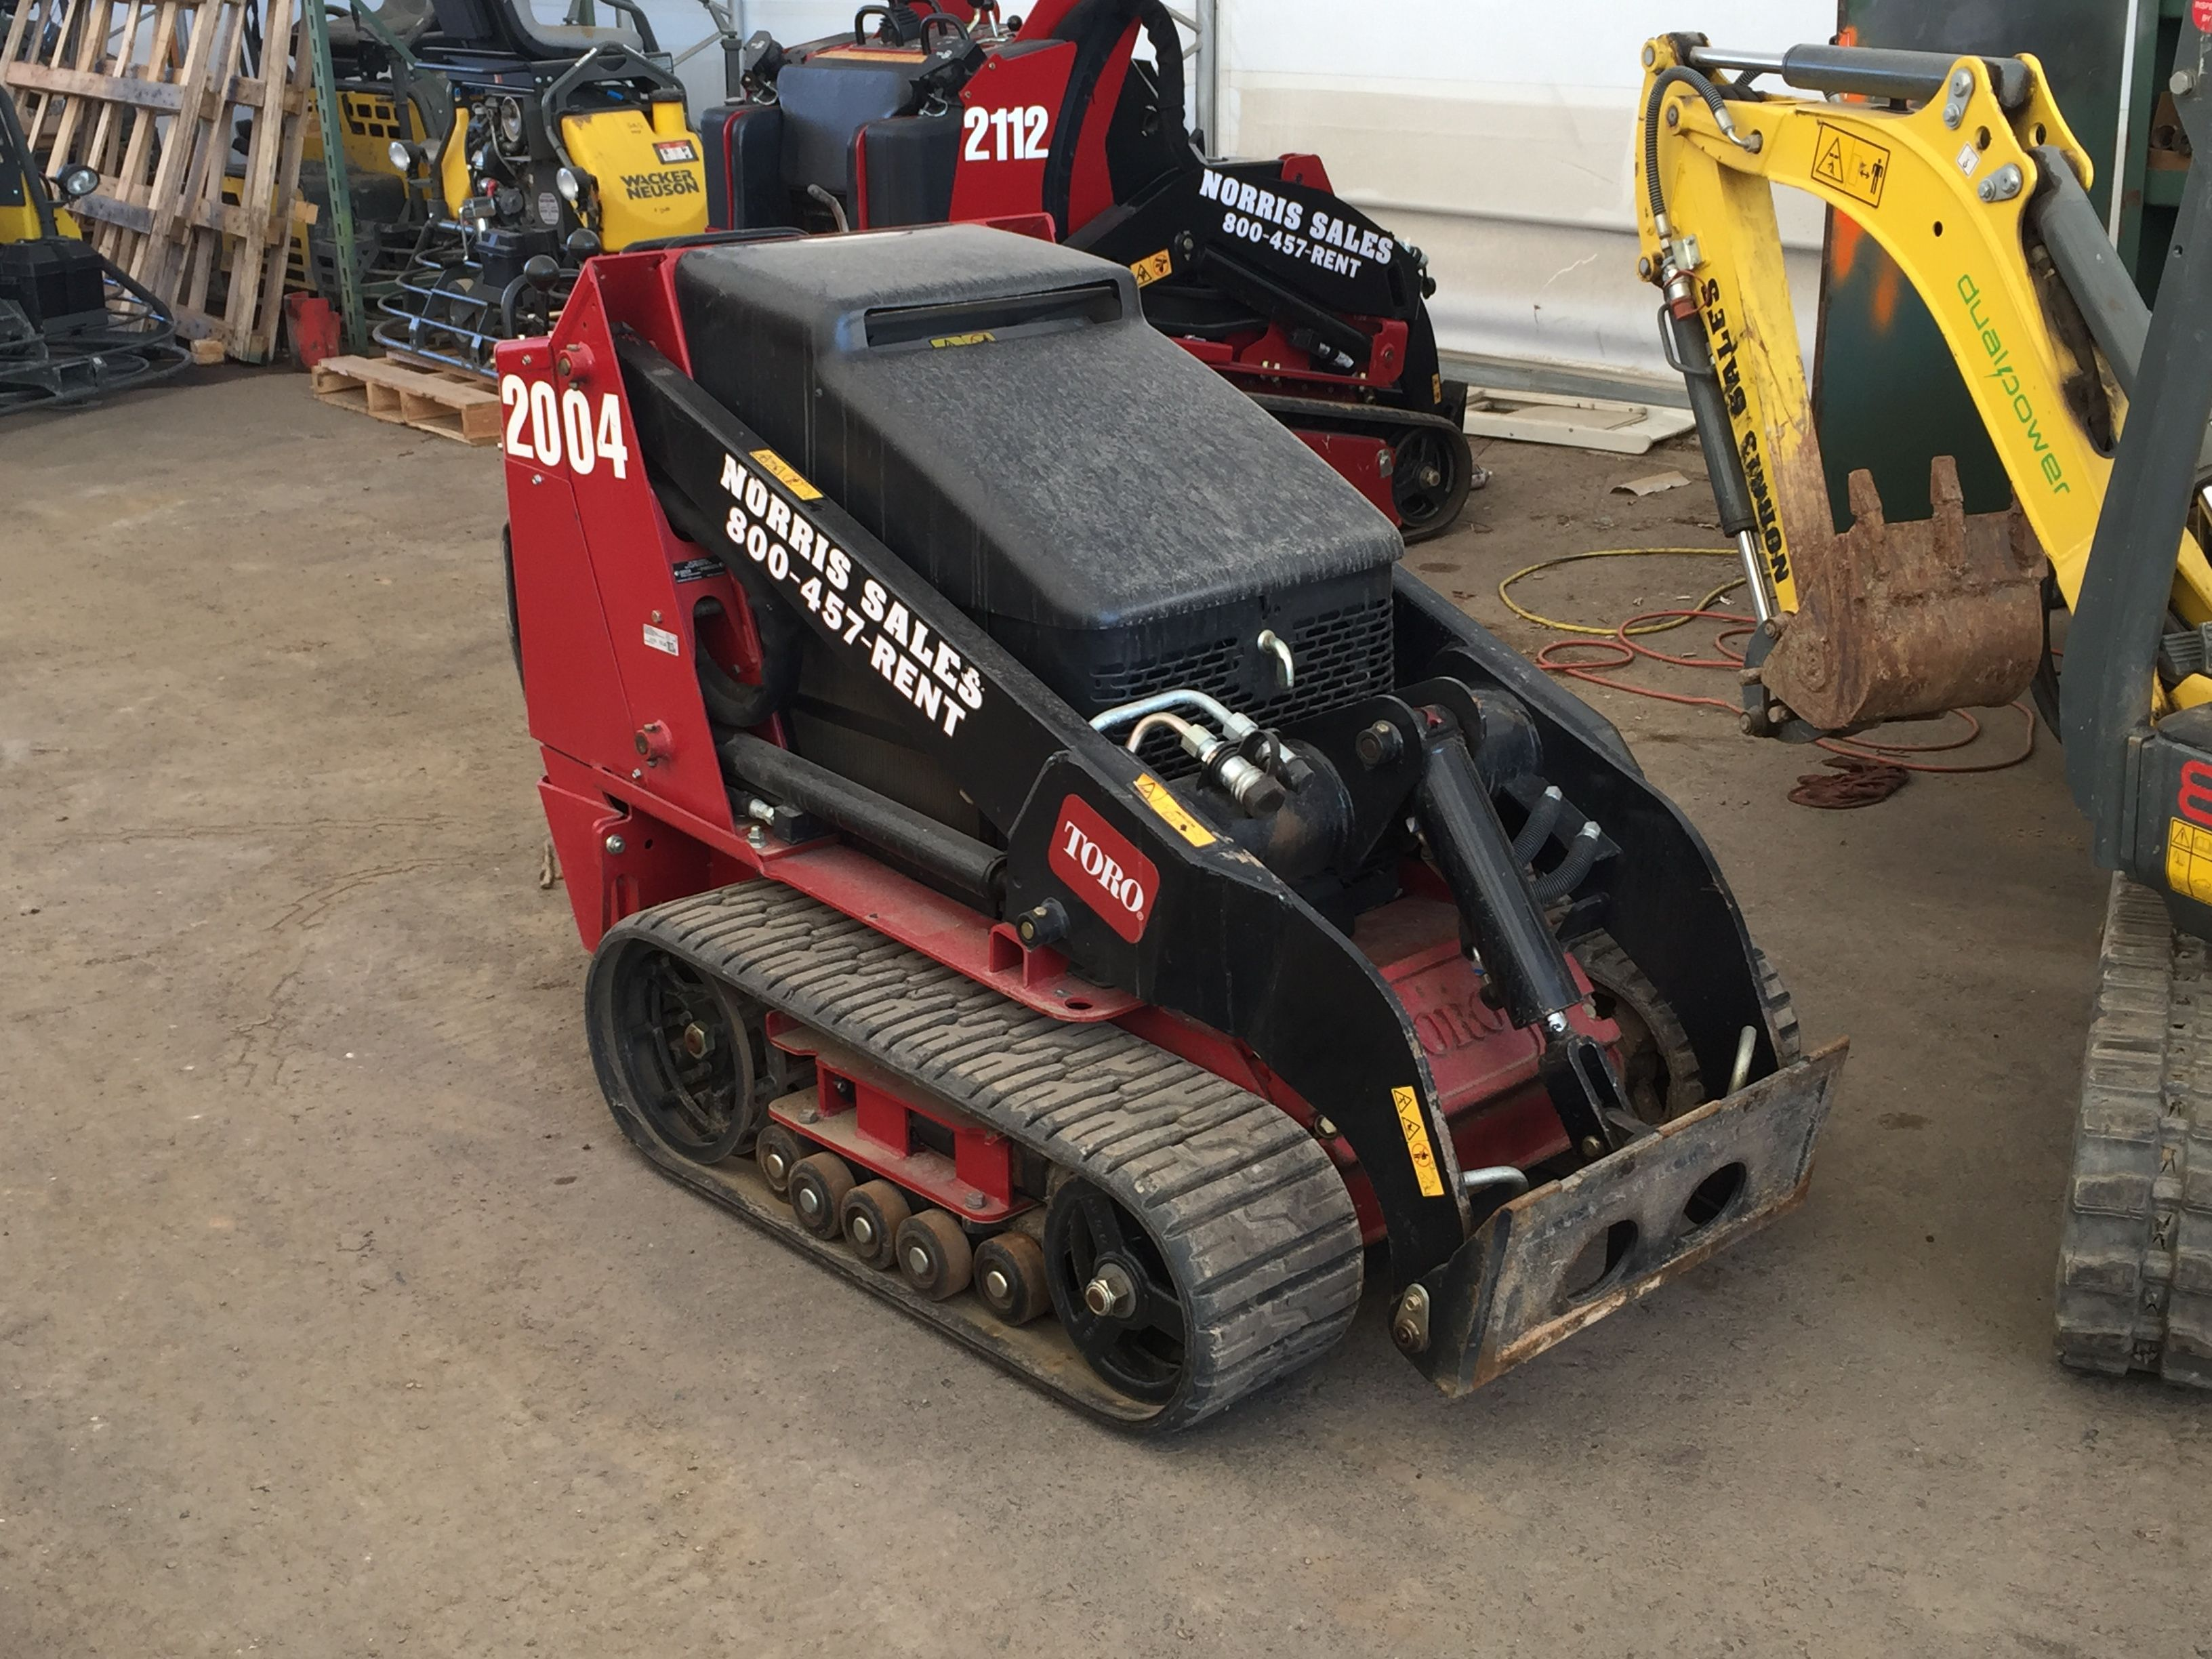 Rent Or Buy Any Toto Toro Dingo Equipment And Accessories From Norris Sales That You Need Traktor